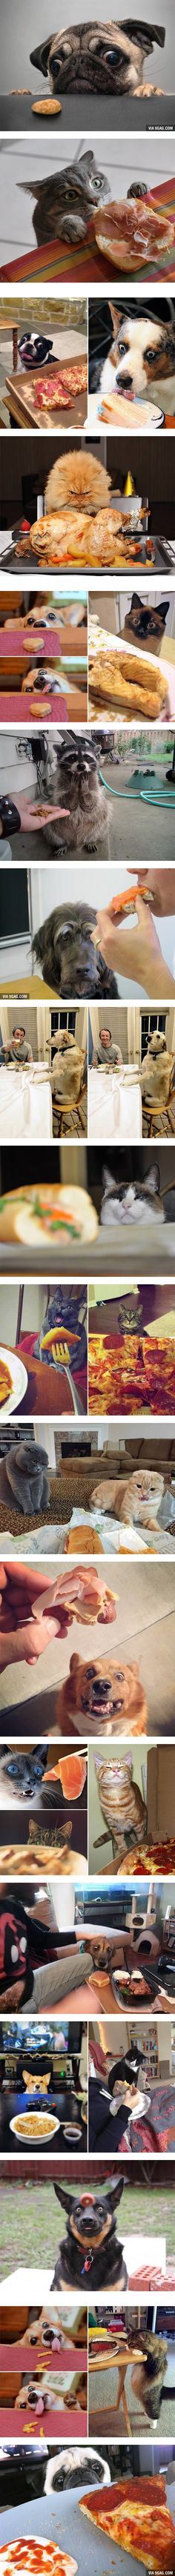 Look at these pets' facial expression looking at food will make your day